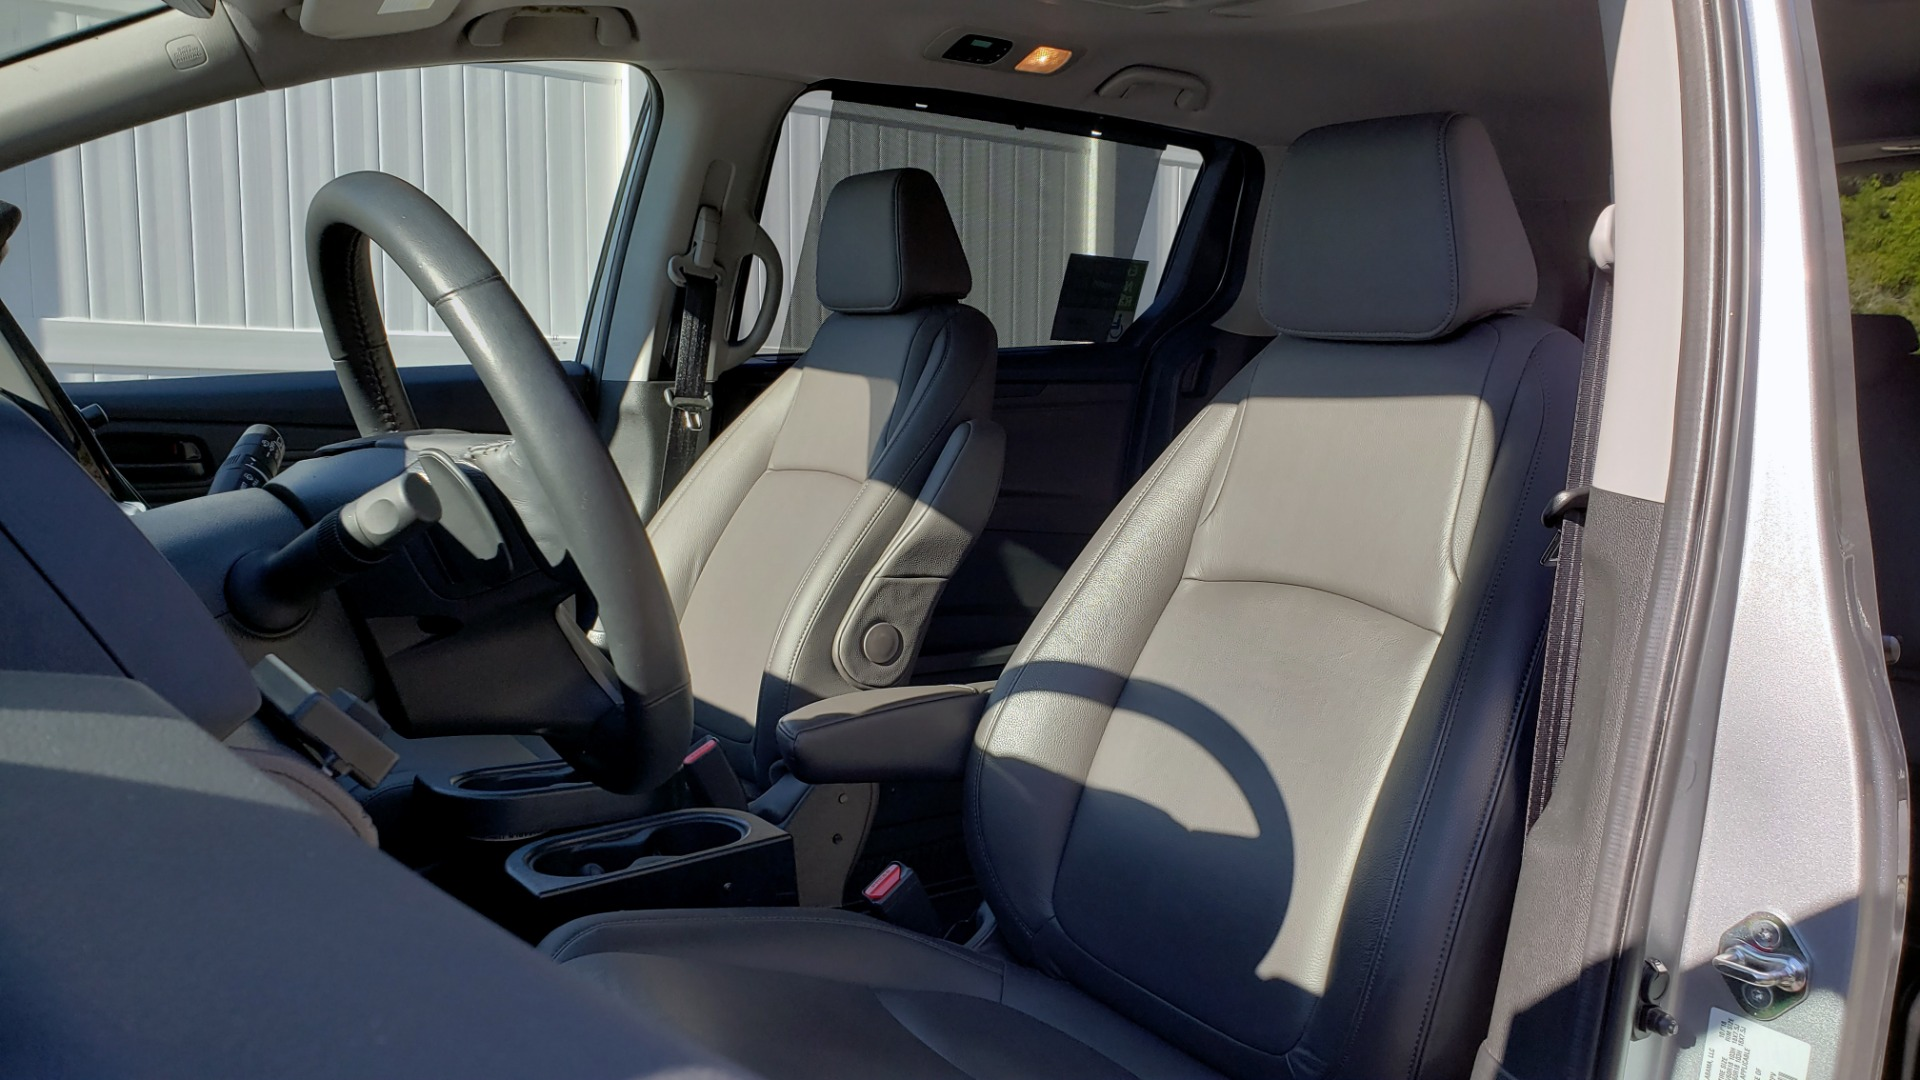 Used 2019 Honda ODYSSEY EX-L BRAUNABILITY / NAV / RES / LKA / BLUE-RAY / SUNROOF / REARVIEW for sale $49,999 at Formula Imports in Charlotte NC 28227 14